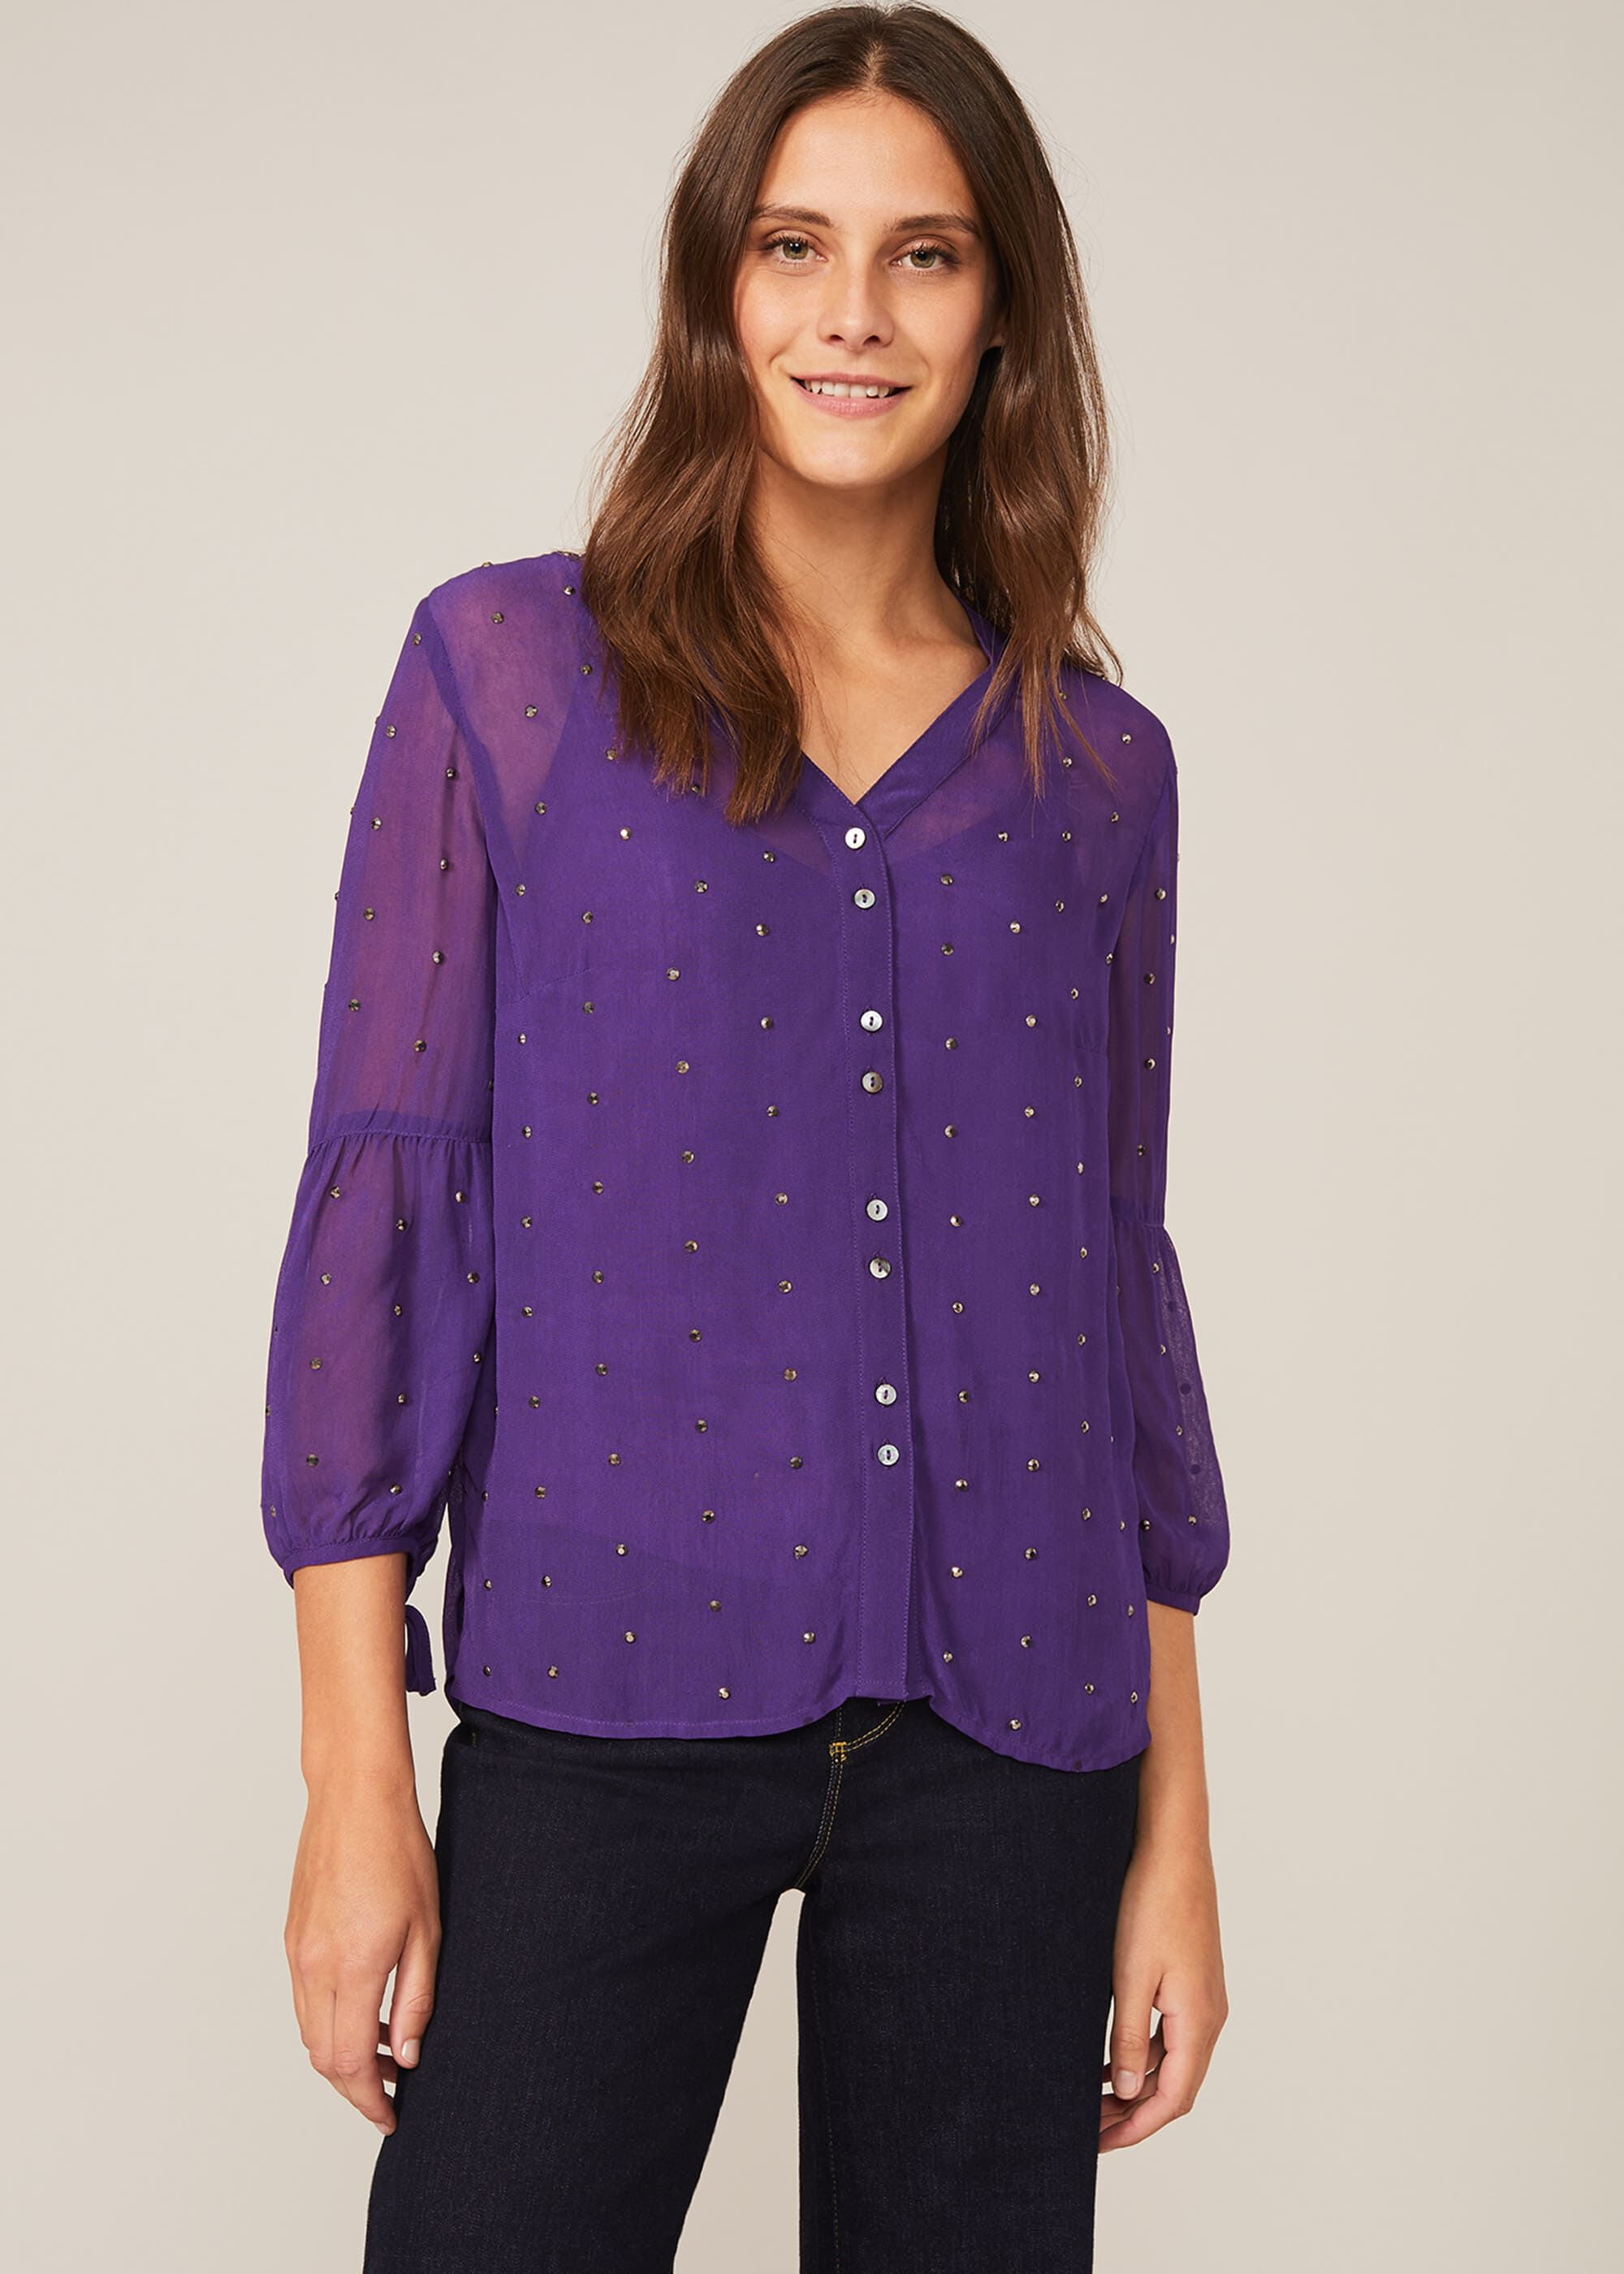 Phase Eight Coray Stud Blouse, Purple, Blouse